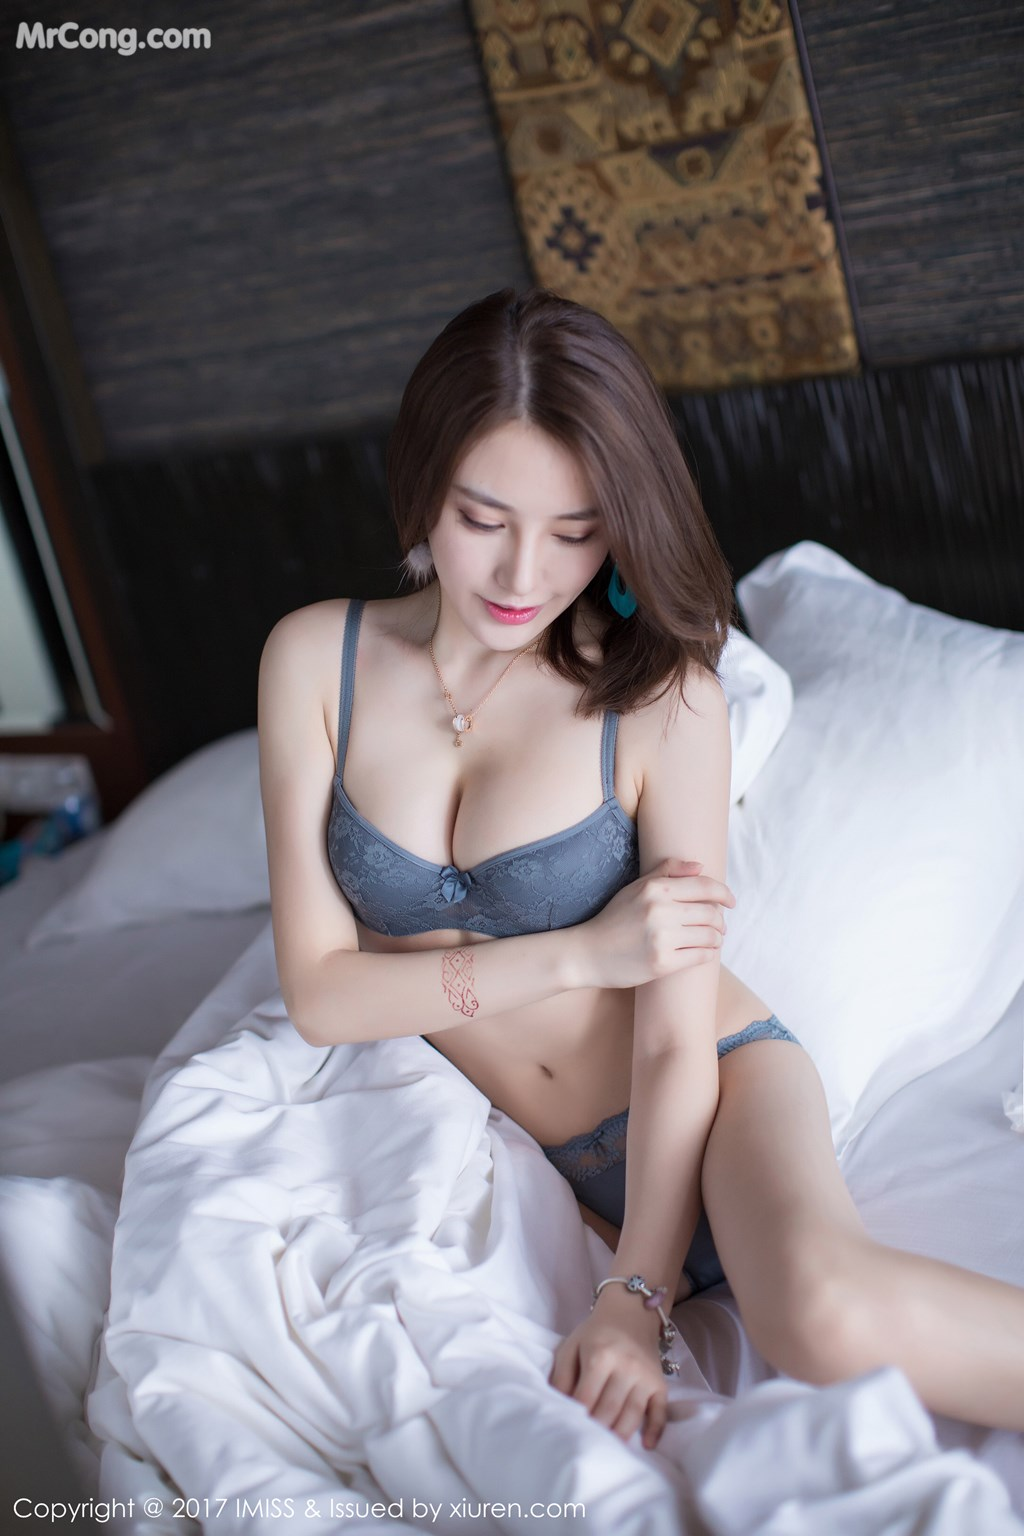 Tron bo anh vong 1 goi cam nhat cang tron hinh anh 5